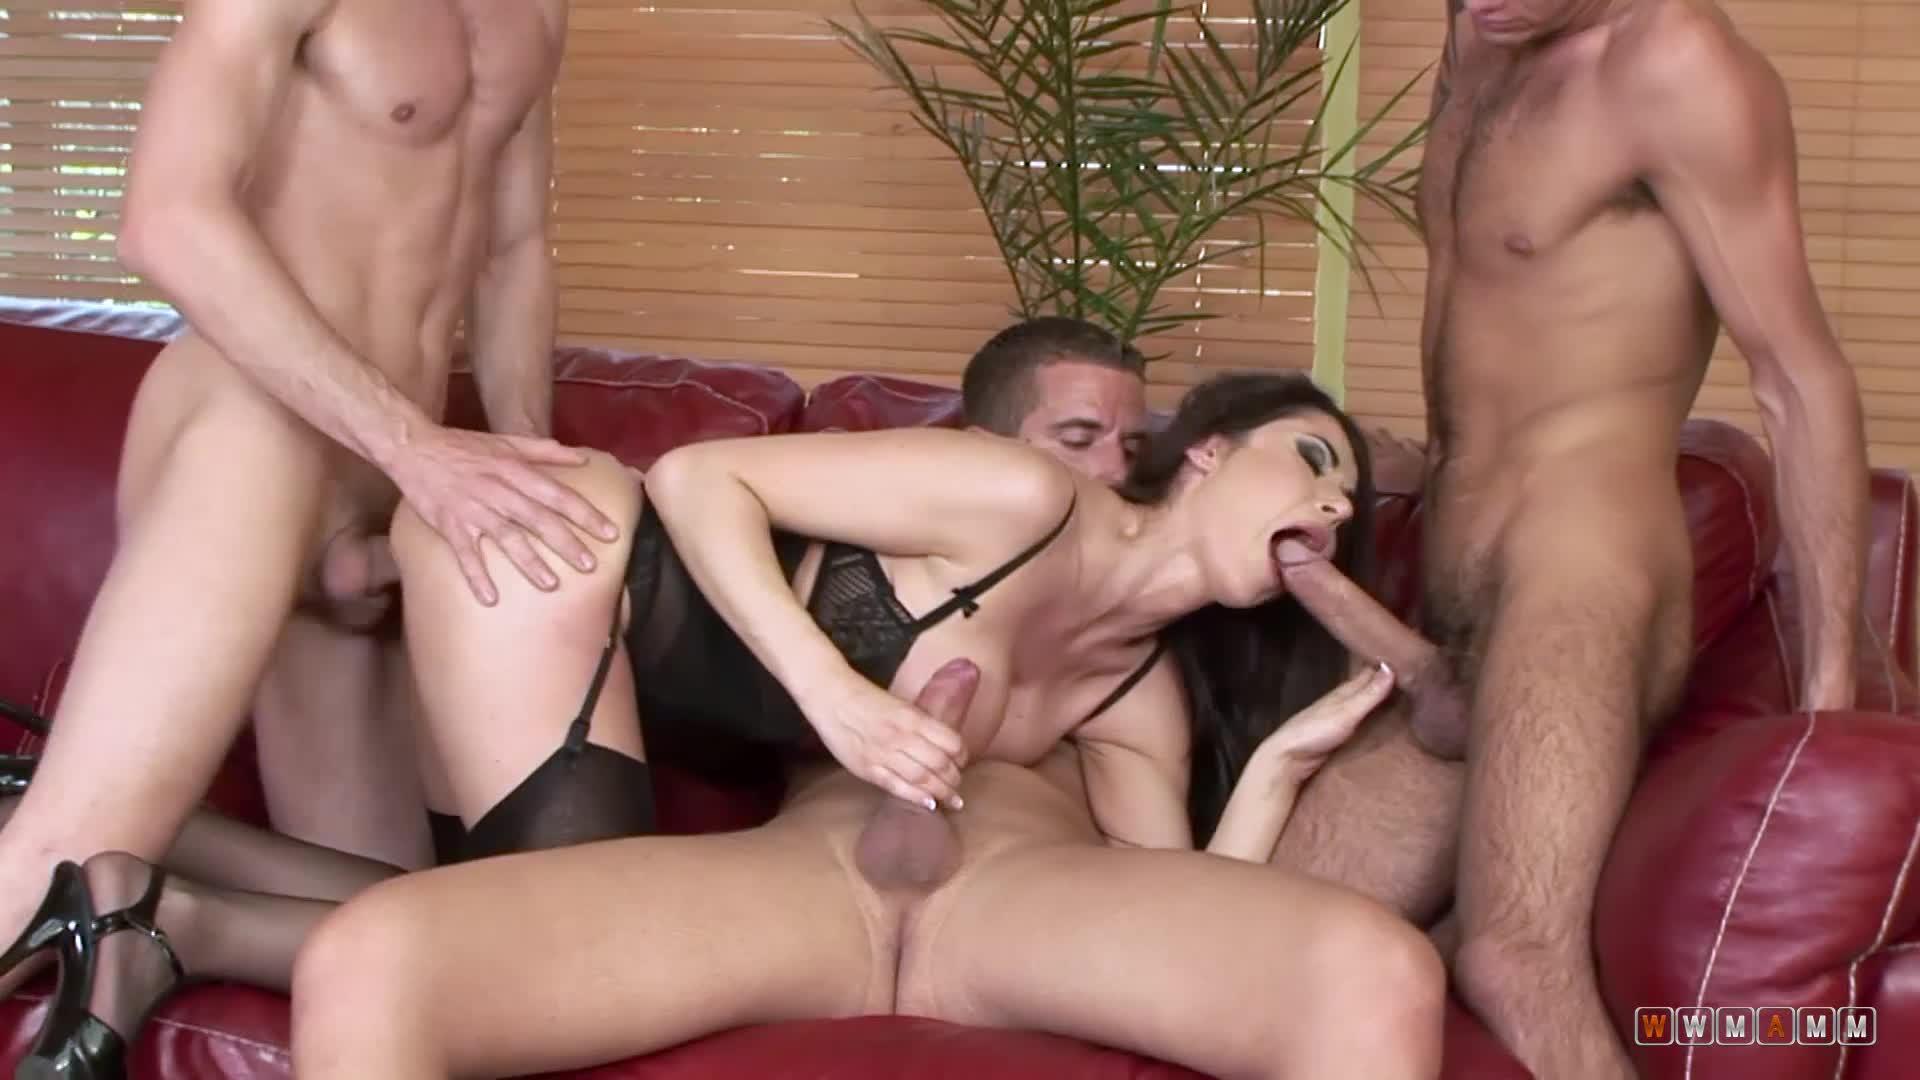 Busty Milf Got Her Holes Attacked By Three Cocks From Every Angle